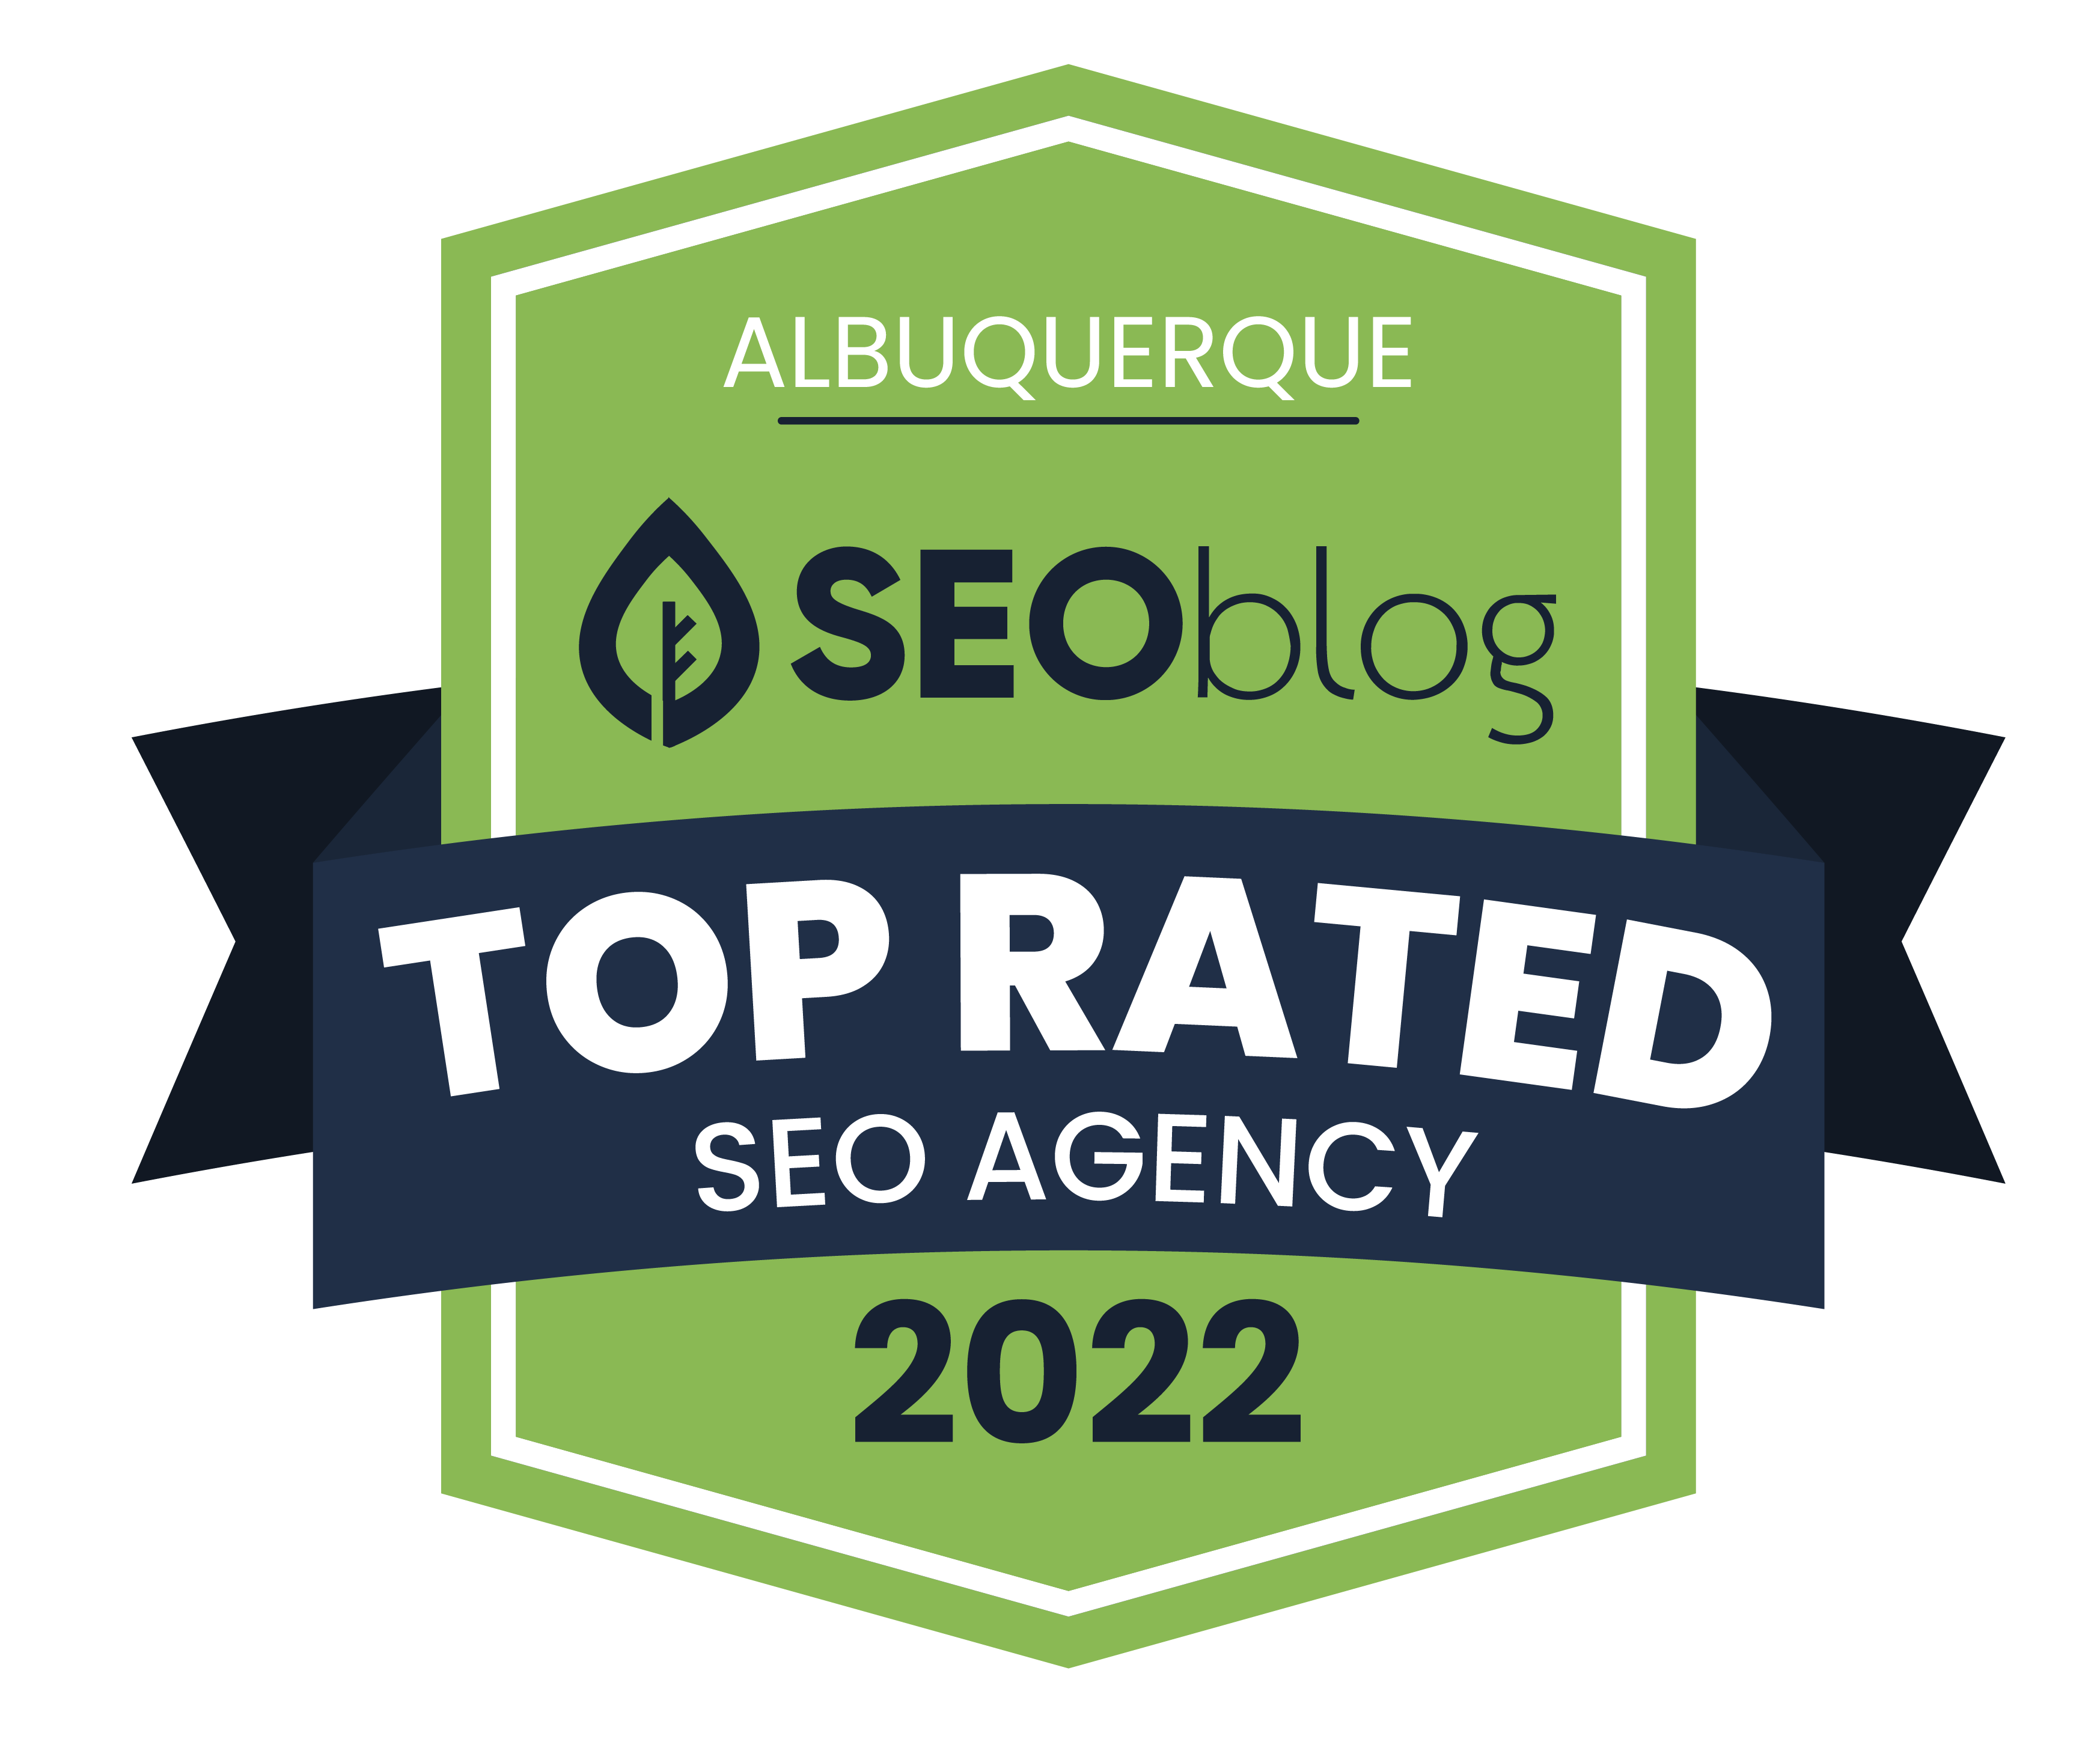 Albuquerque SEO Agency